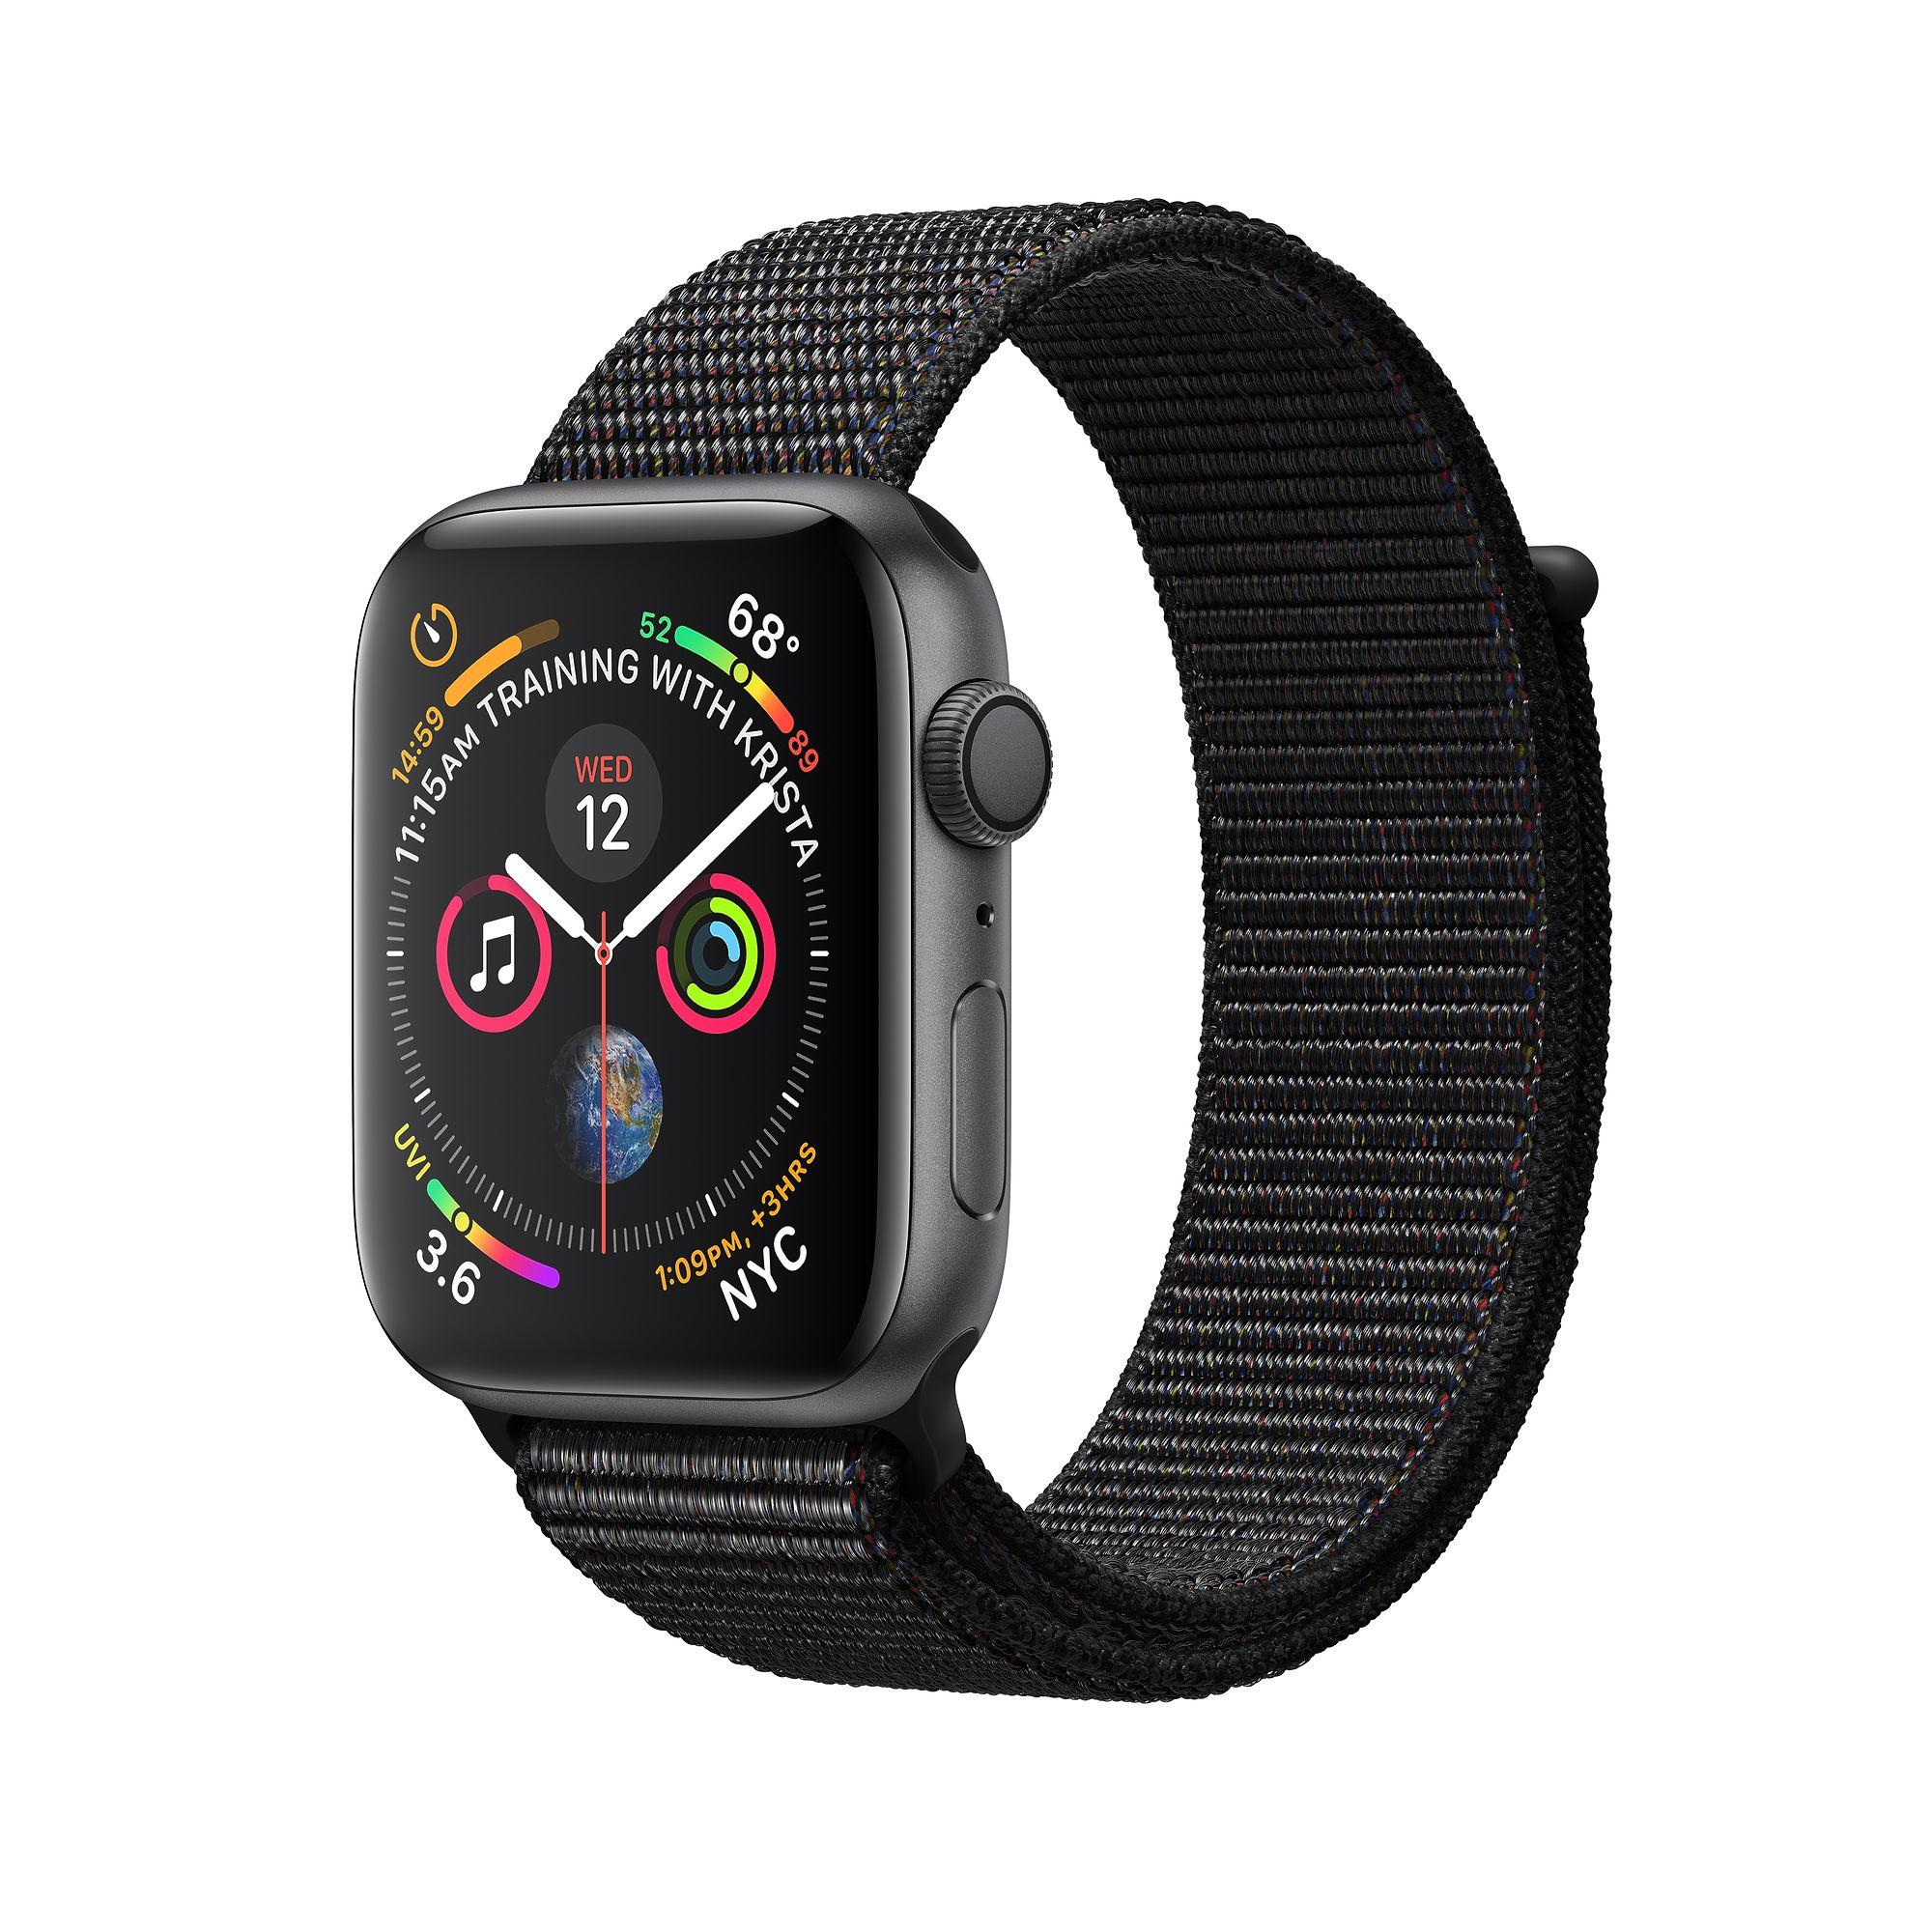 Apple Watch Series 4 Space Gray Aluminum Case With Black Sport Loop (GPS)